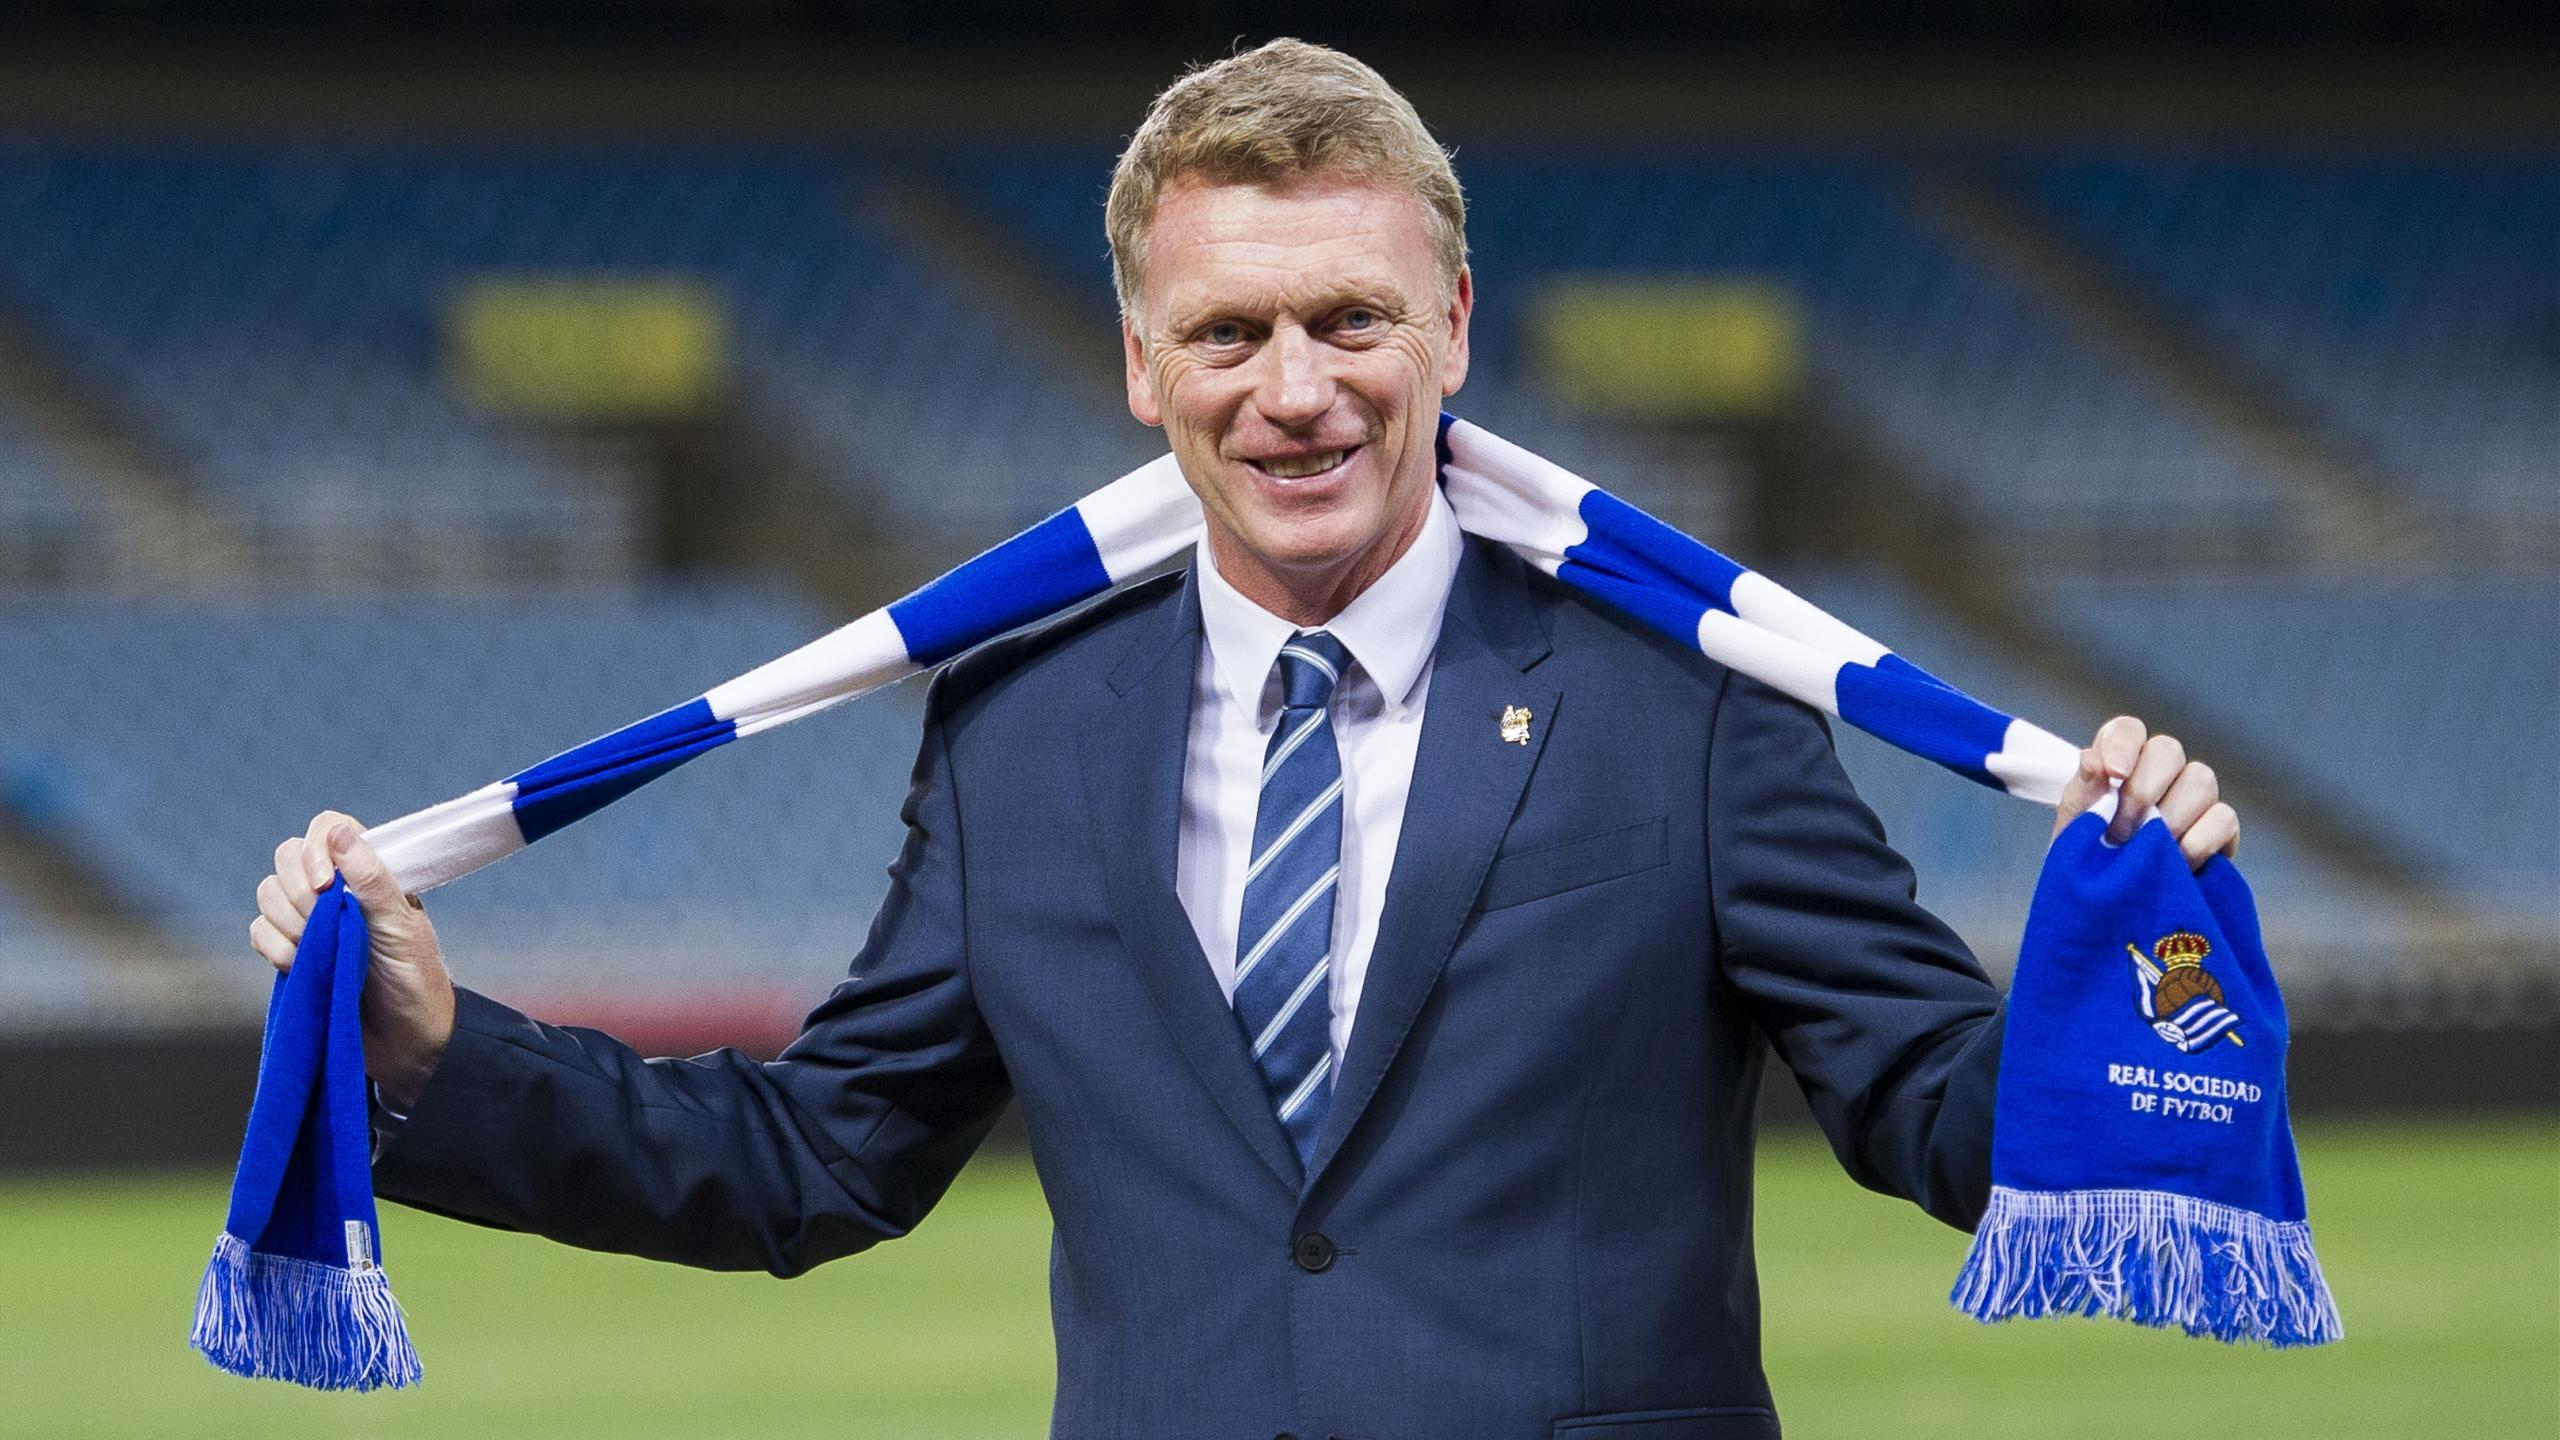 David Moyes, Real Sociedad manager (Getty)